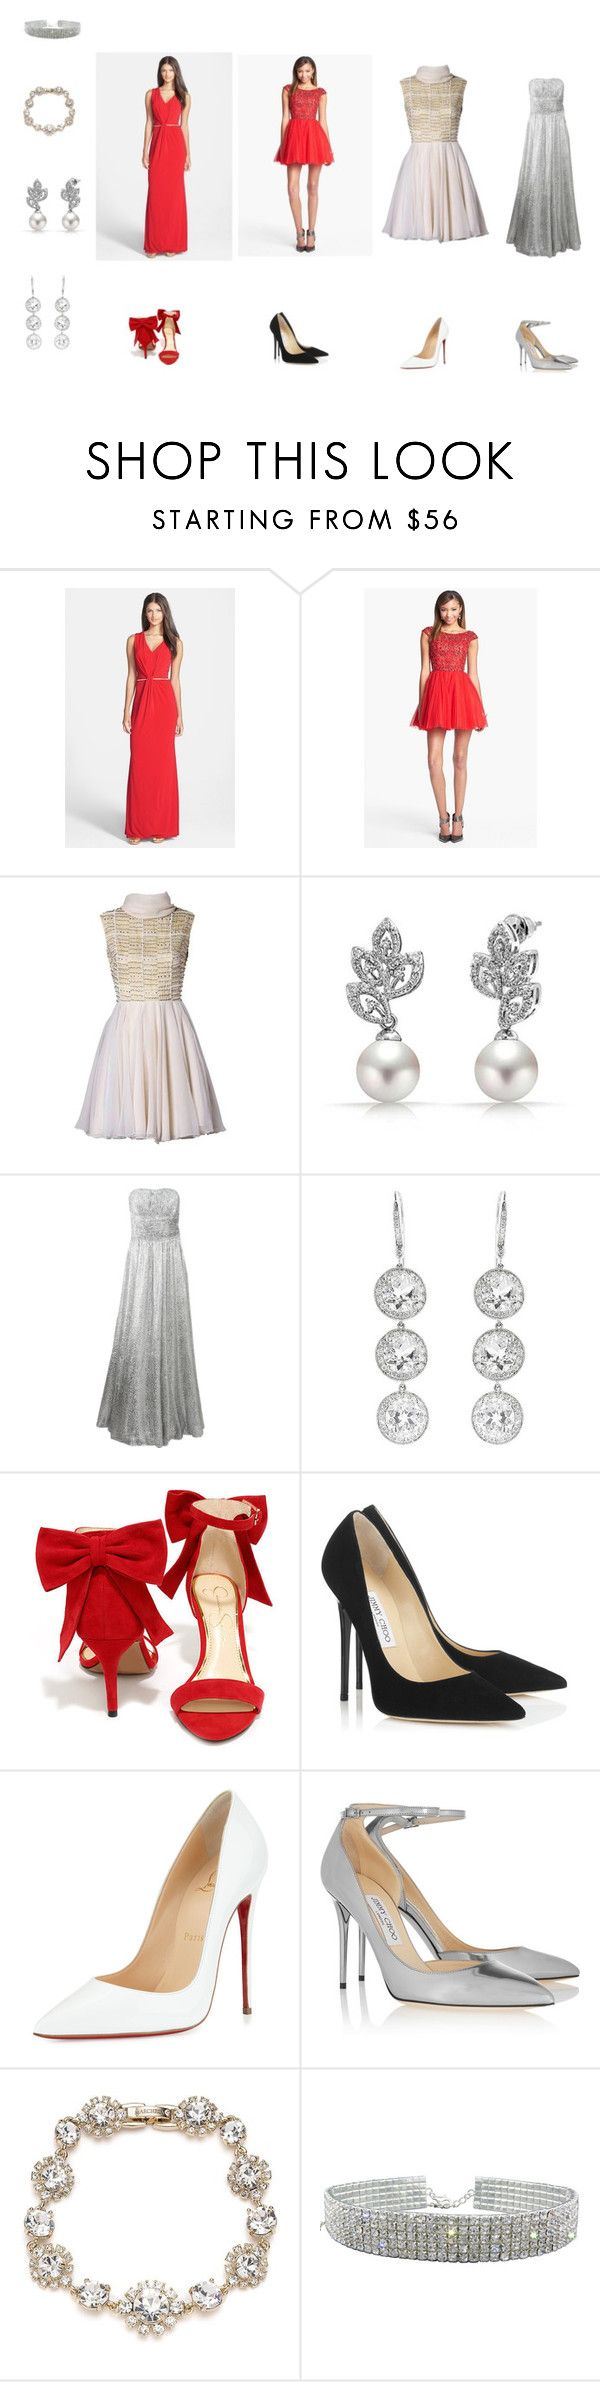 2016 Annual Golden Key VA Ball, Thursday, May 19, 7pm - Women's by evejo on Polyvore featuring Sherri Hill, Michael Kors, Laundry by Shelli Segal, Christian Louboutin, Jessica Simpson, Jimmy Choo, Bling Jewelry, Marchesa and Andrea Fohrman